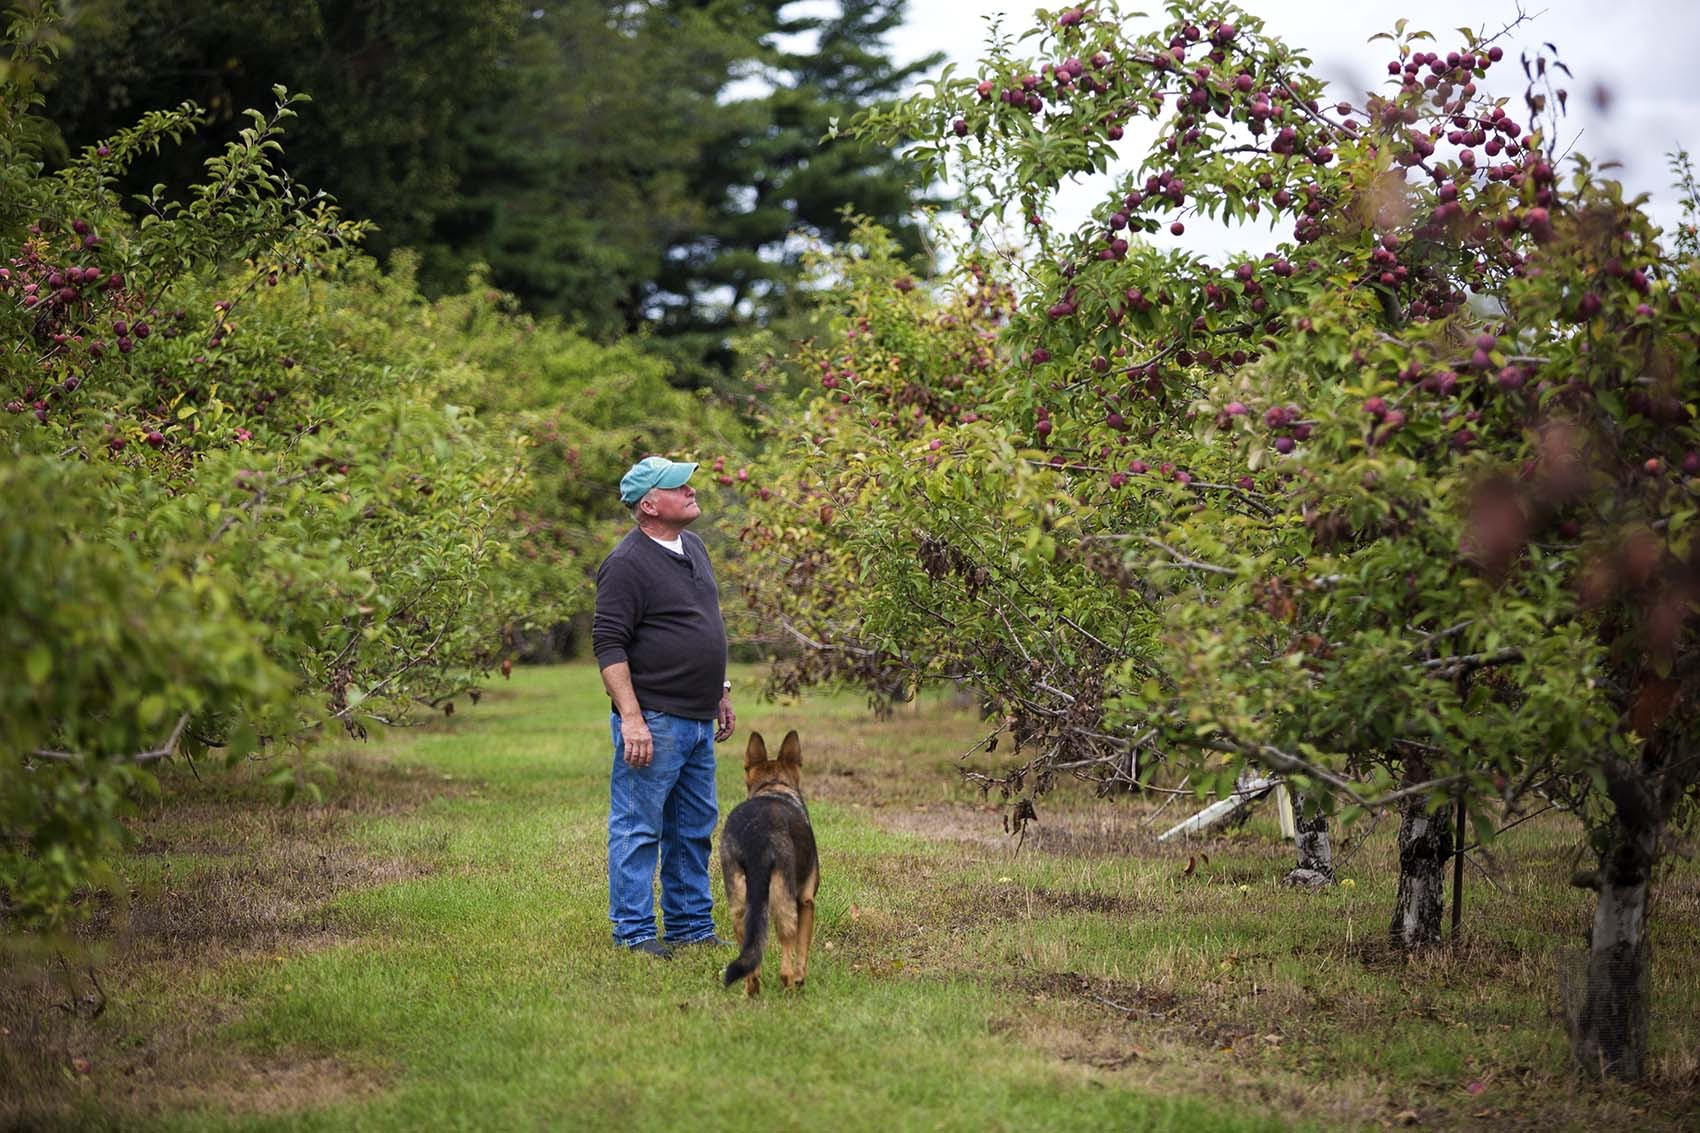 With his dog Nala, Dartmouth Orchards owner Brian Medeiros examines the apple trees affected by this summer's drought. (Jesse Costa/WBUR)